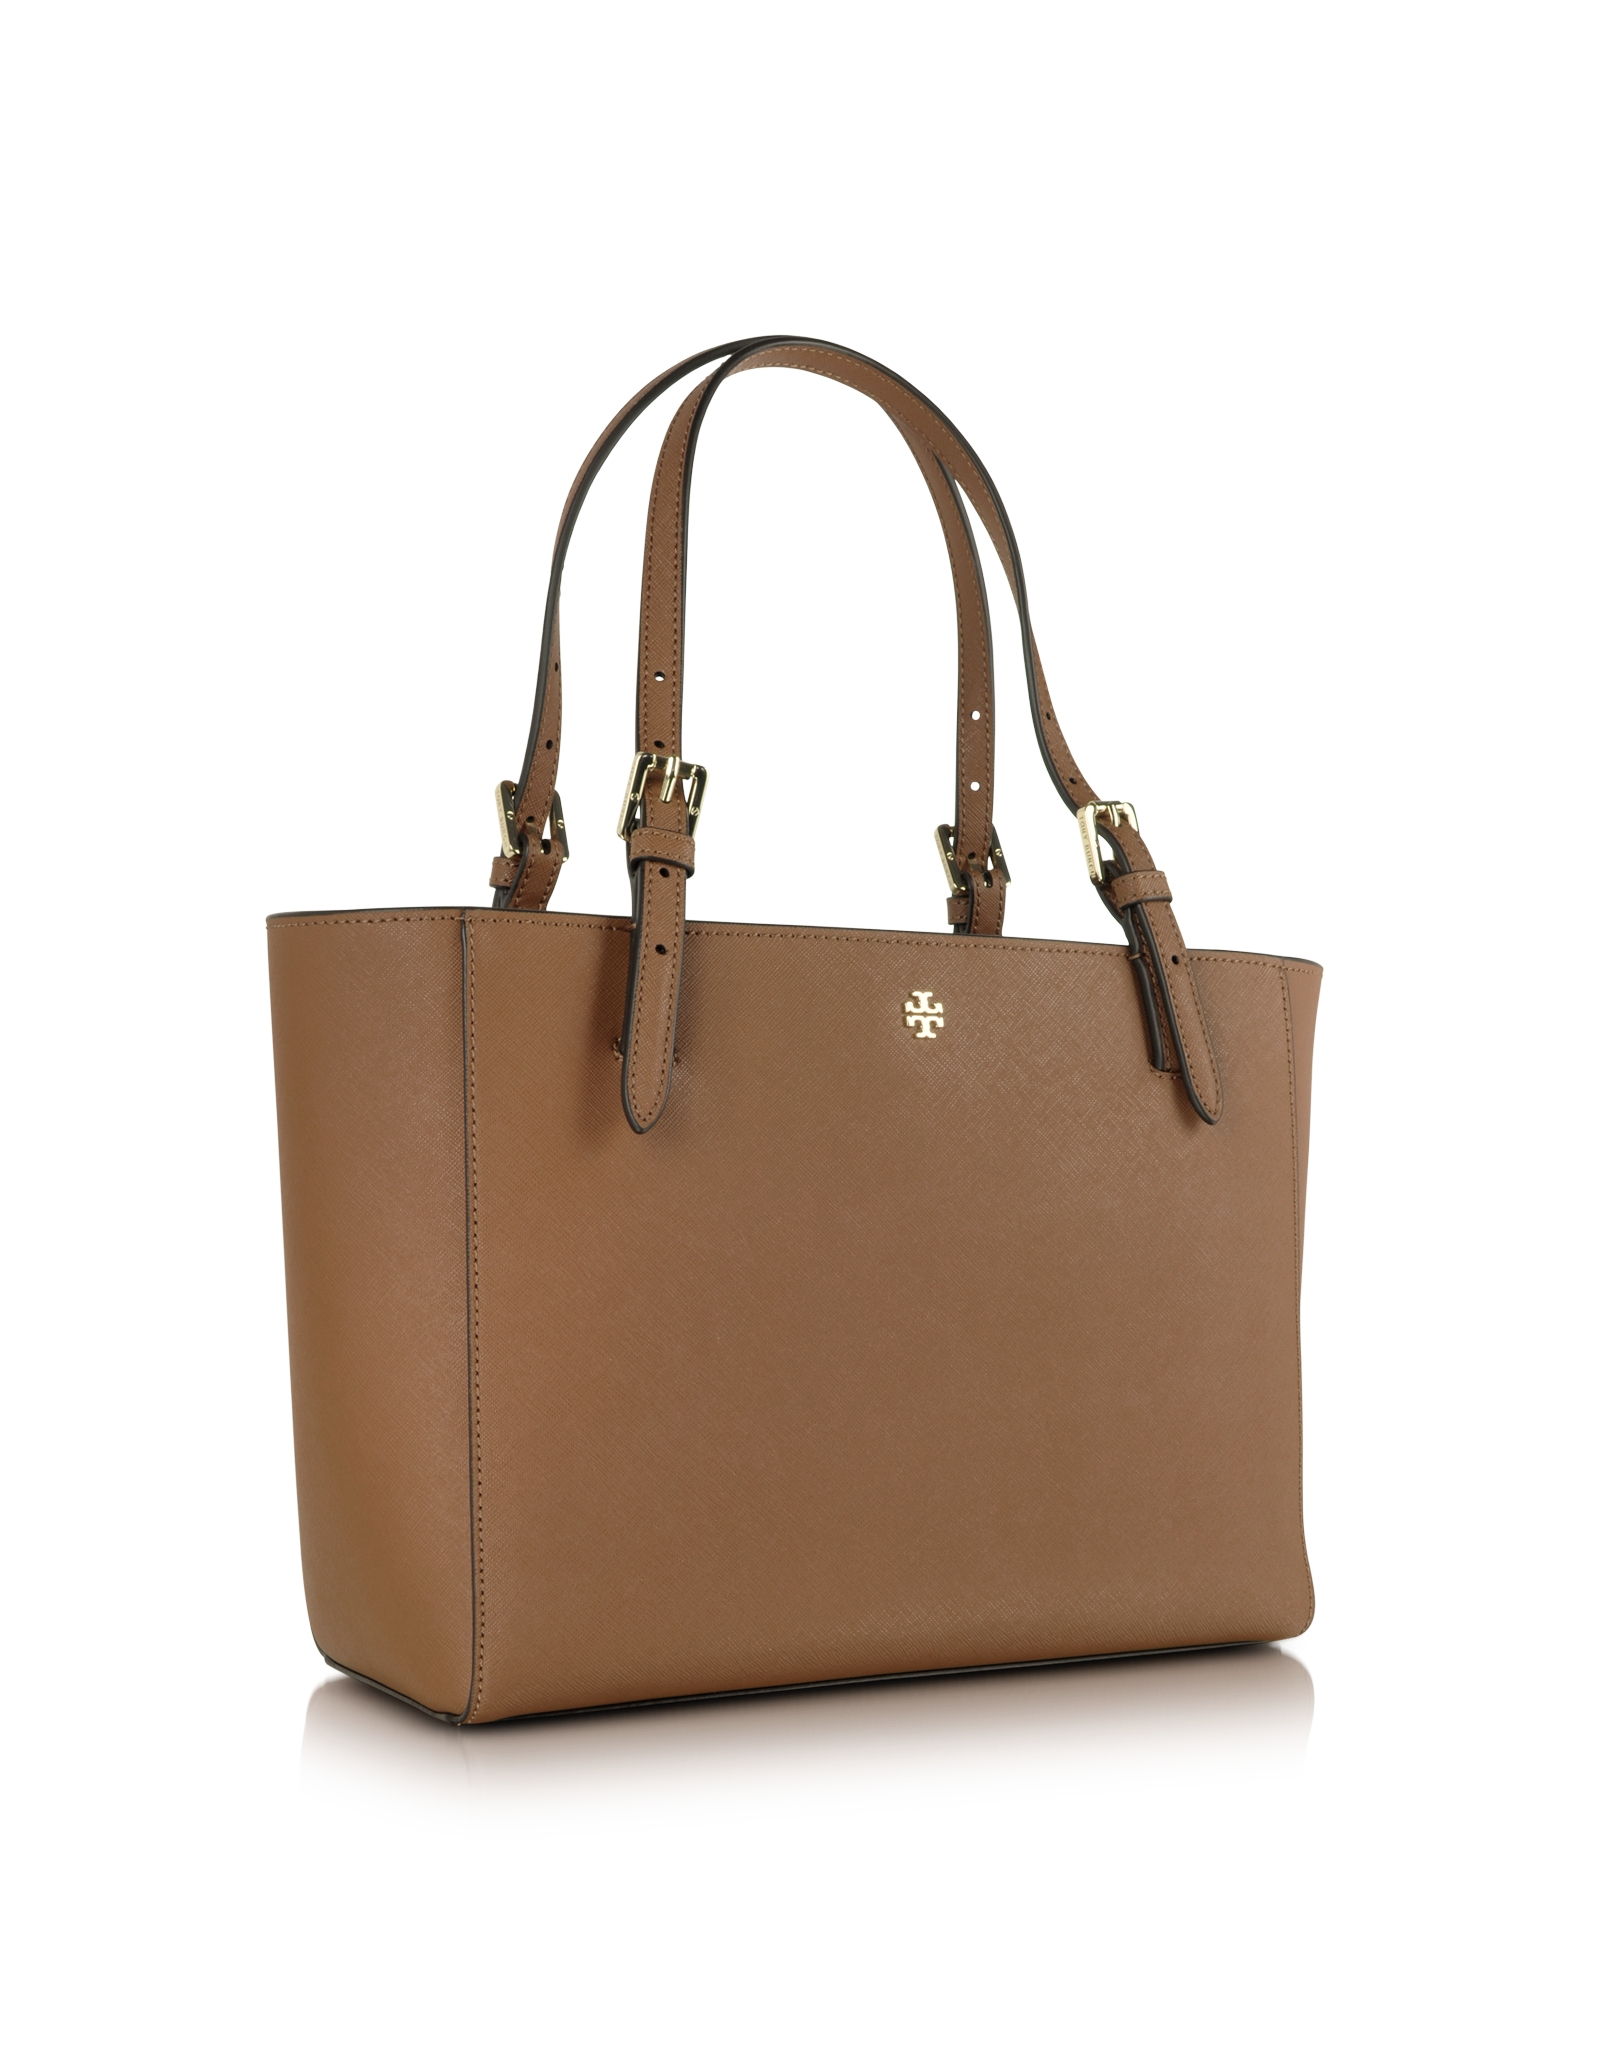 fc1bde93dbfa Lyst - Tory Burch York Saffiano Leather Small Buckle Tote in Brown